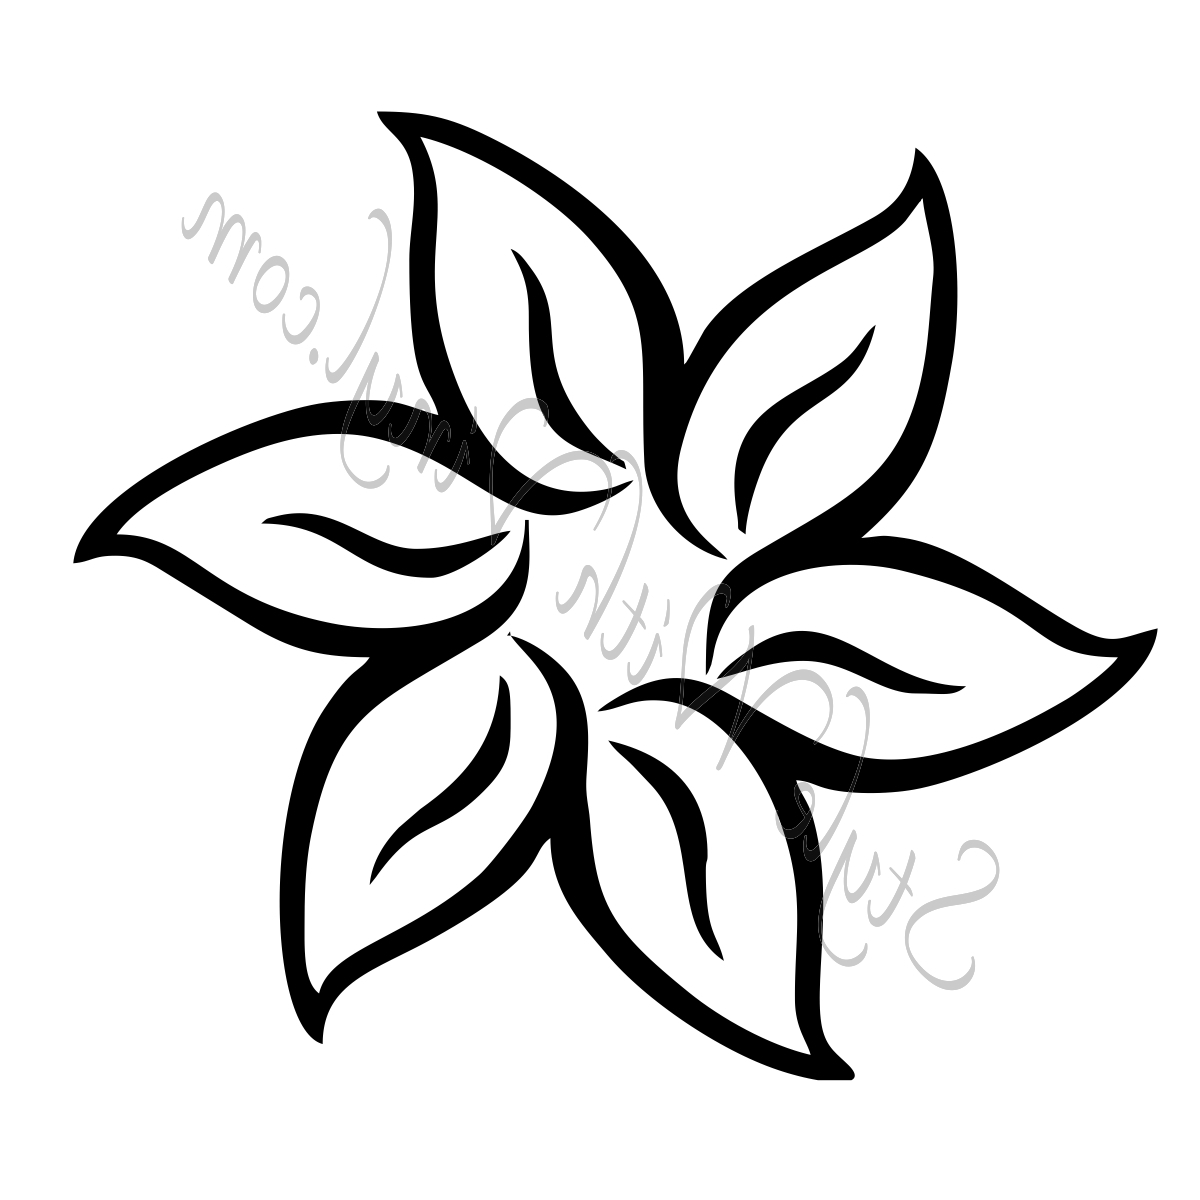 1200x1200 flower basic drawing and basic flower drawing basic flower drawing